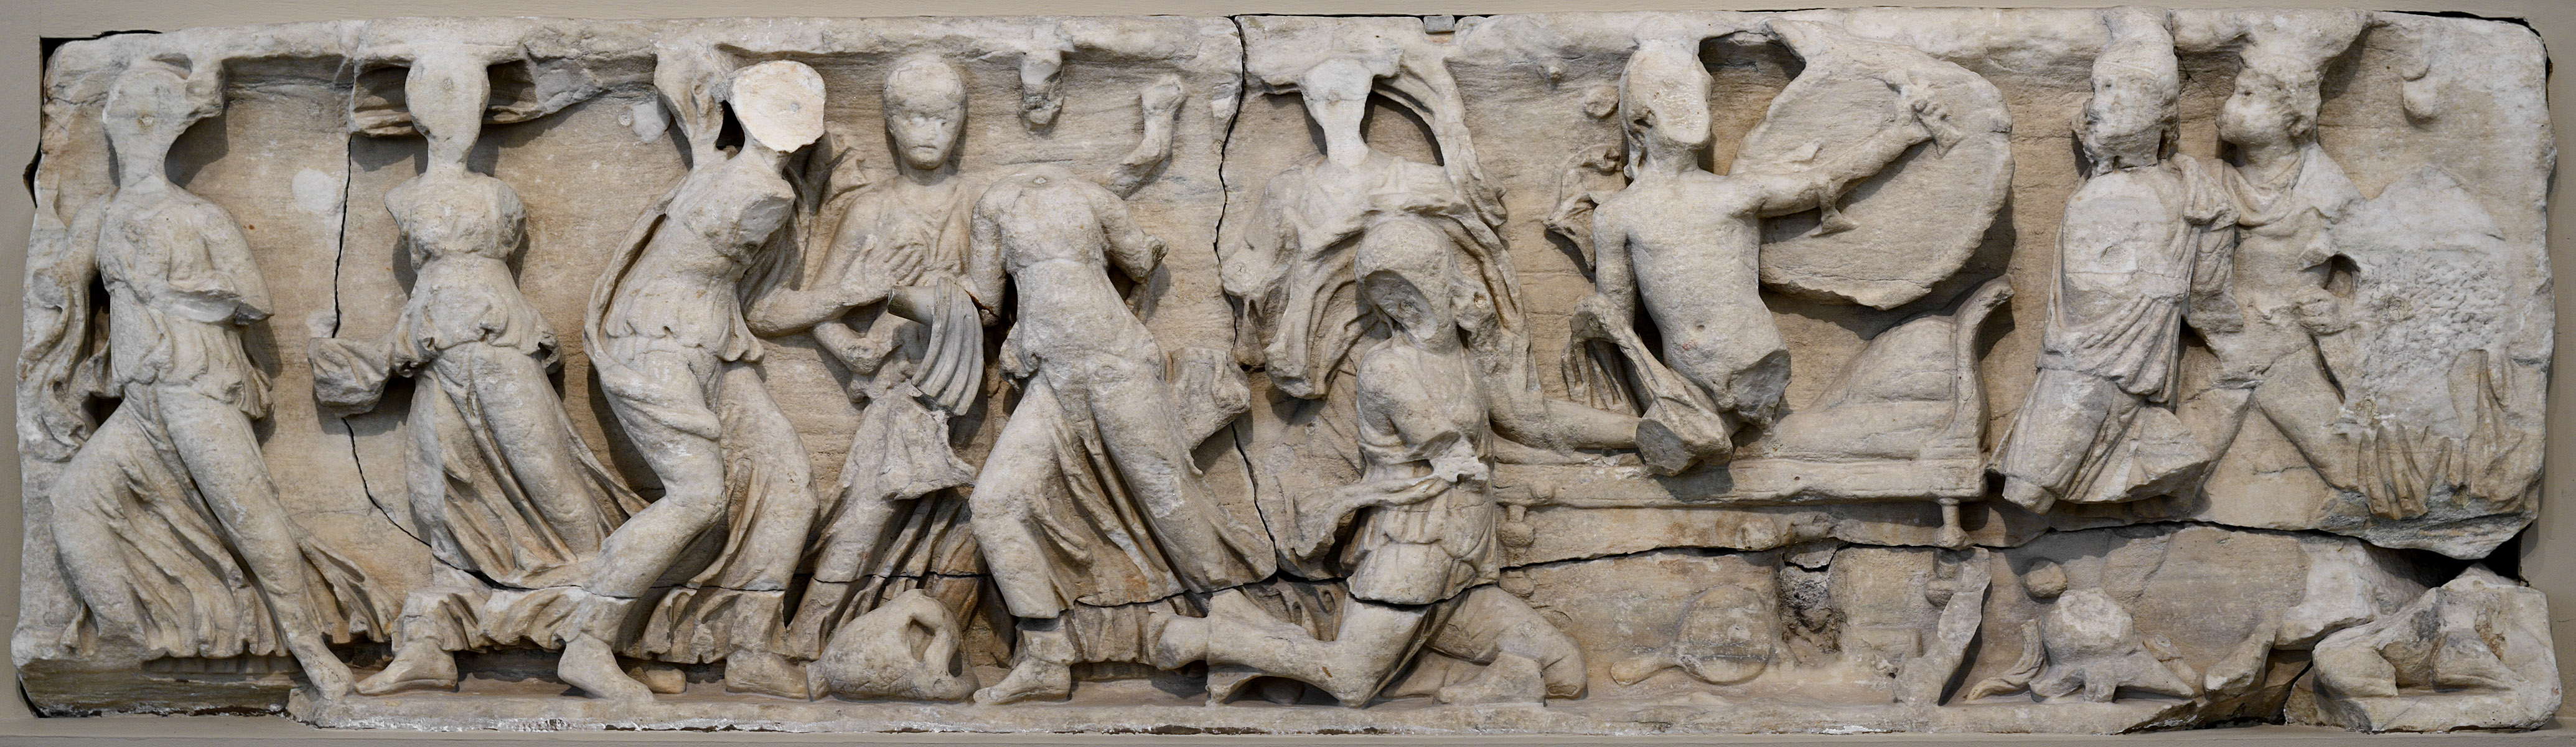 Achilles at the Court of King Lycomedes (Achilles on the island of Scyros). Longitudinal panel of a sarcophagus. Marble. Ca. mid-2nd century CE. Inv. Nos. II 1a 833, 925—927, 930. Moscow, the Pushkin Museum of Fine Arts